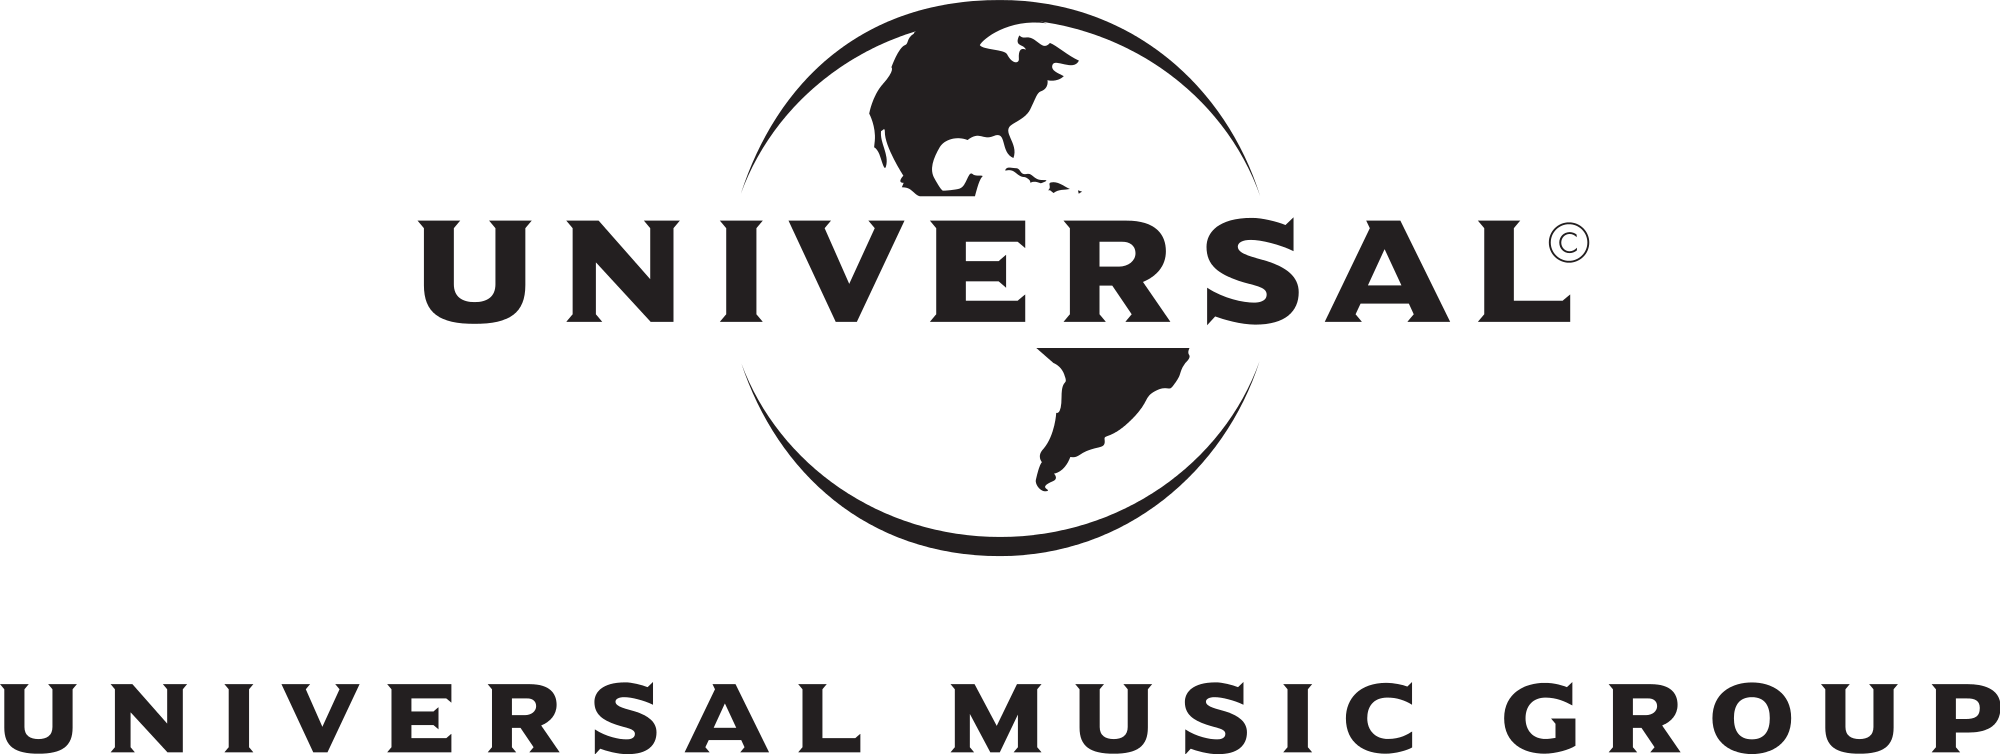 Transparent stickpng. Universal music group logo png picture royalty free download